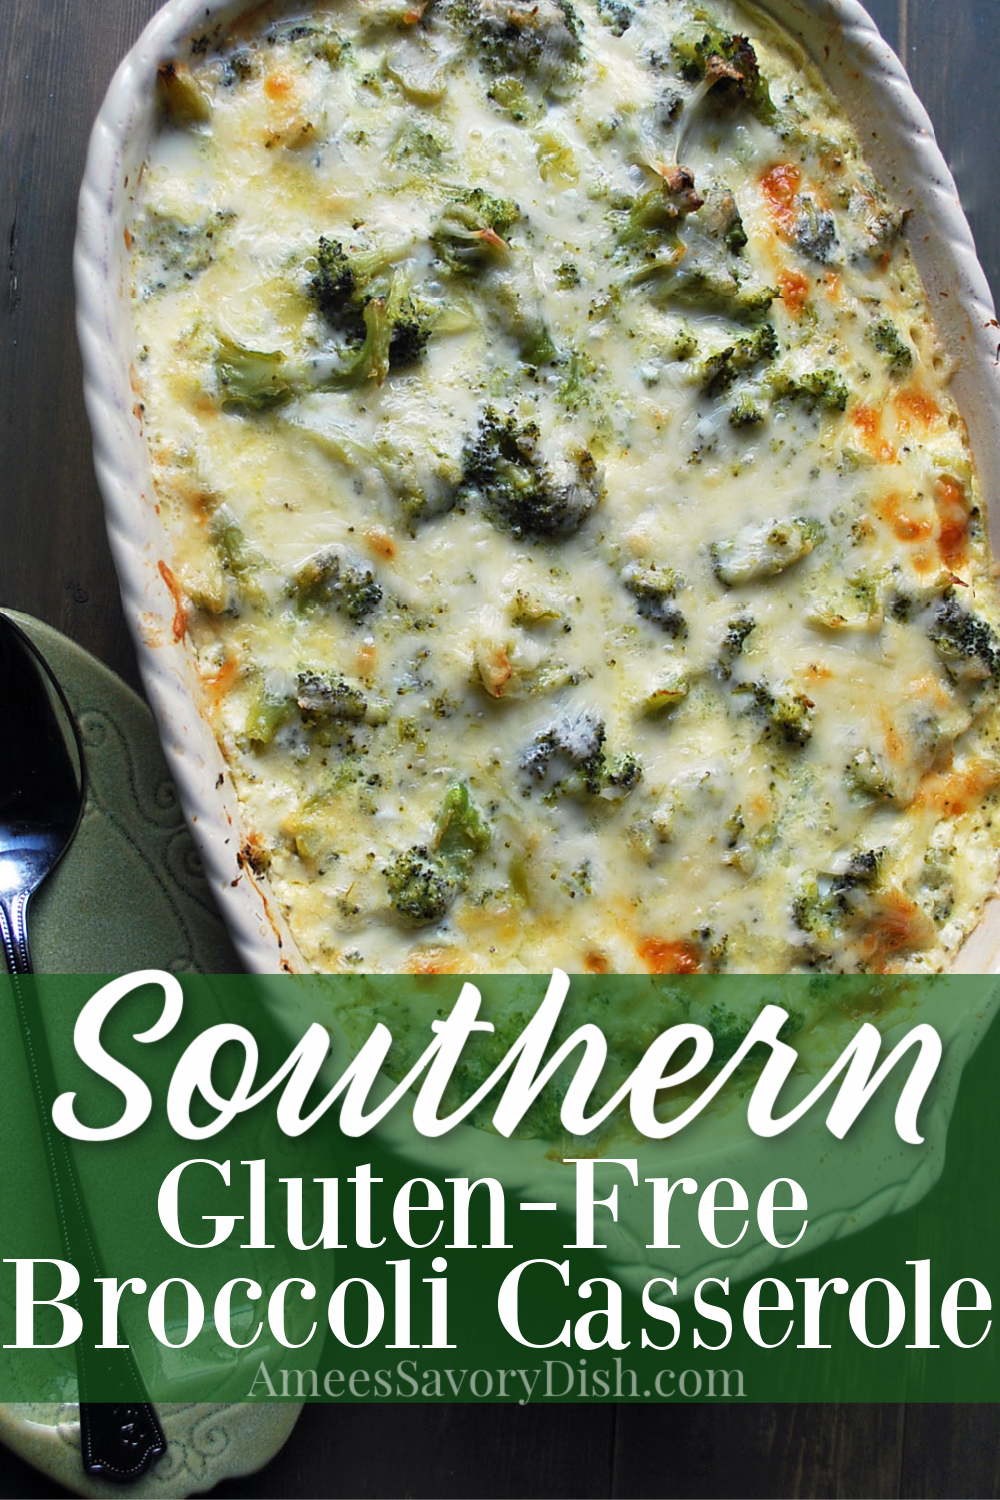 ThisGluten-Free Broccoli Casserole is a delicious and easy broccoli casserole recipe made with fresh broccoli florets, white cheddar cheese, eggs, sour cream, and butter. It's a perfect flavorful side dish for any meal! #glutenfree #glutenfreebroccolicasserole #broccolicasserole #glutenfreesidedish via @Ameessavorydish